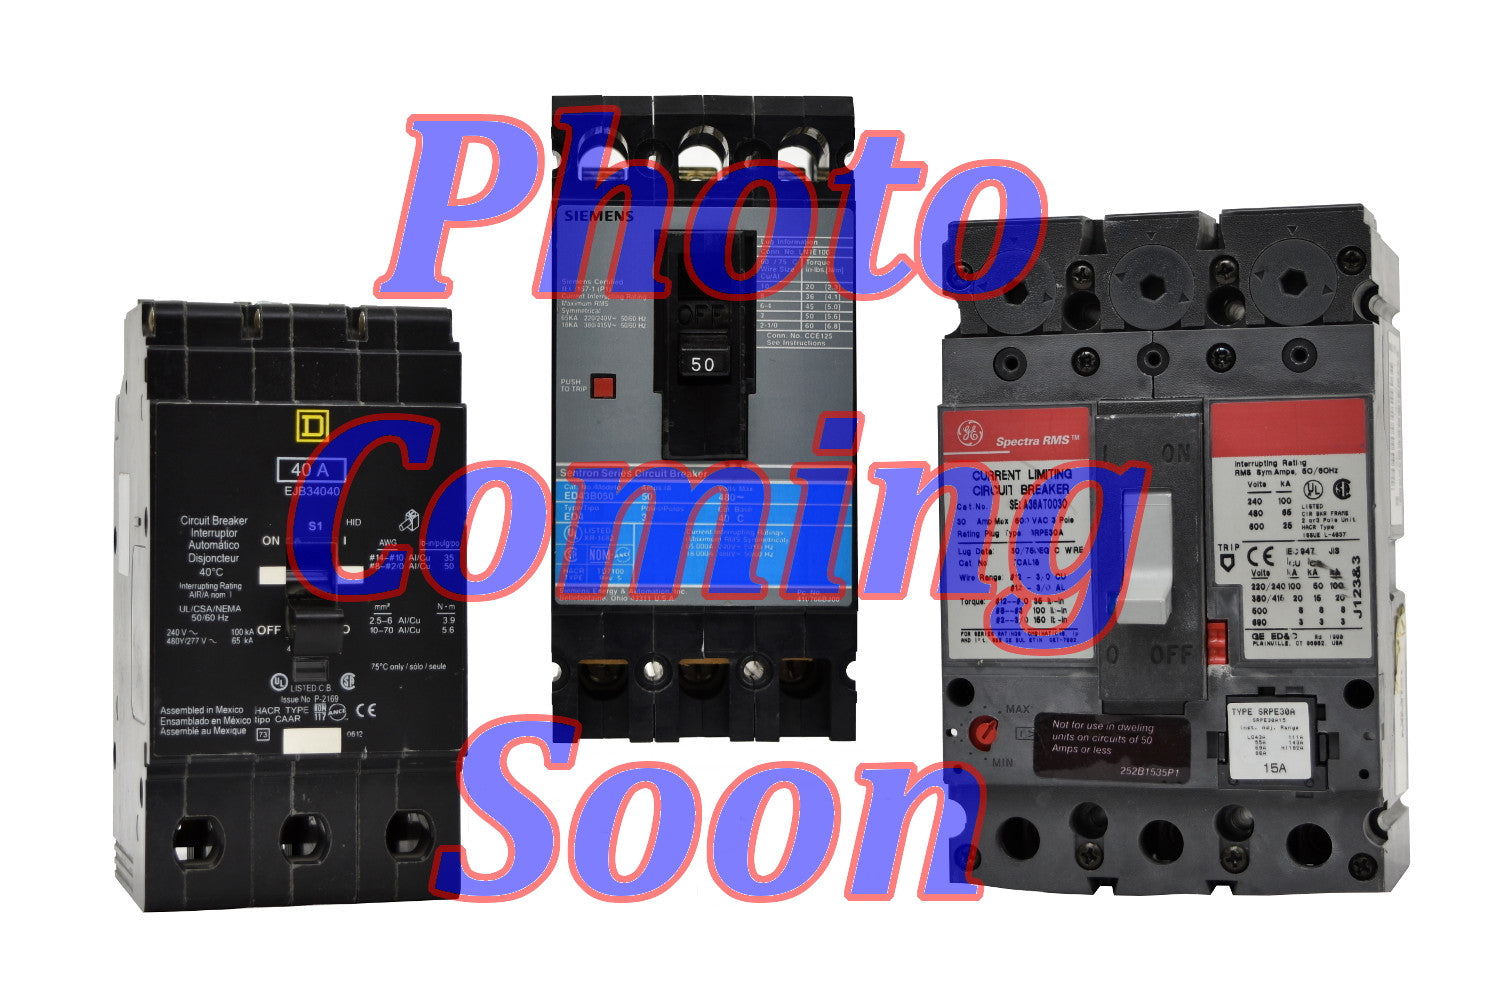 General Electric FCV326TE025R1 Circuit Breakers